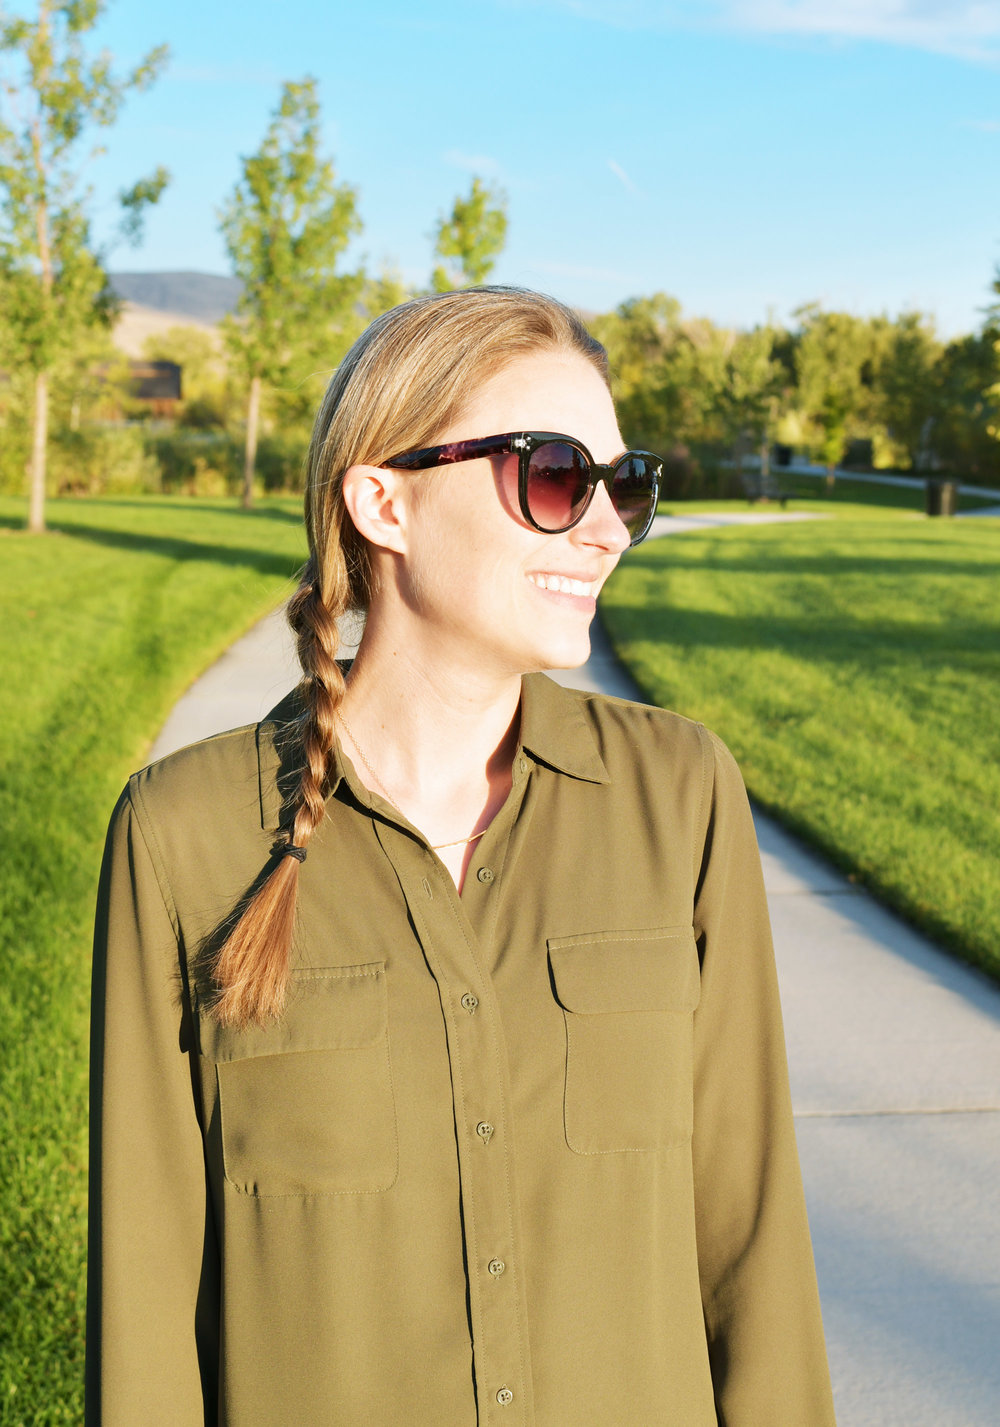 Gorjana 'Taner' bar necklace with olive green shirt — Cotton Cashmere Cat Hair